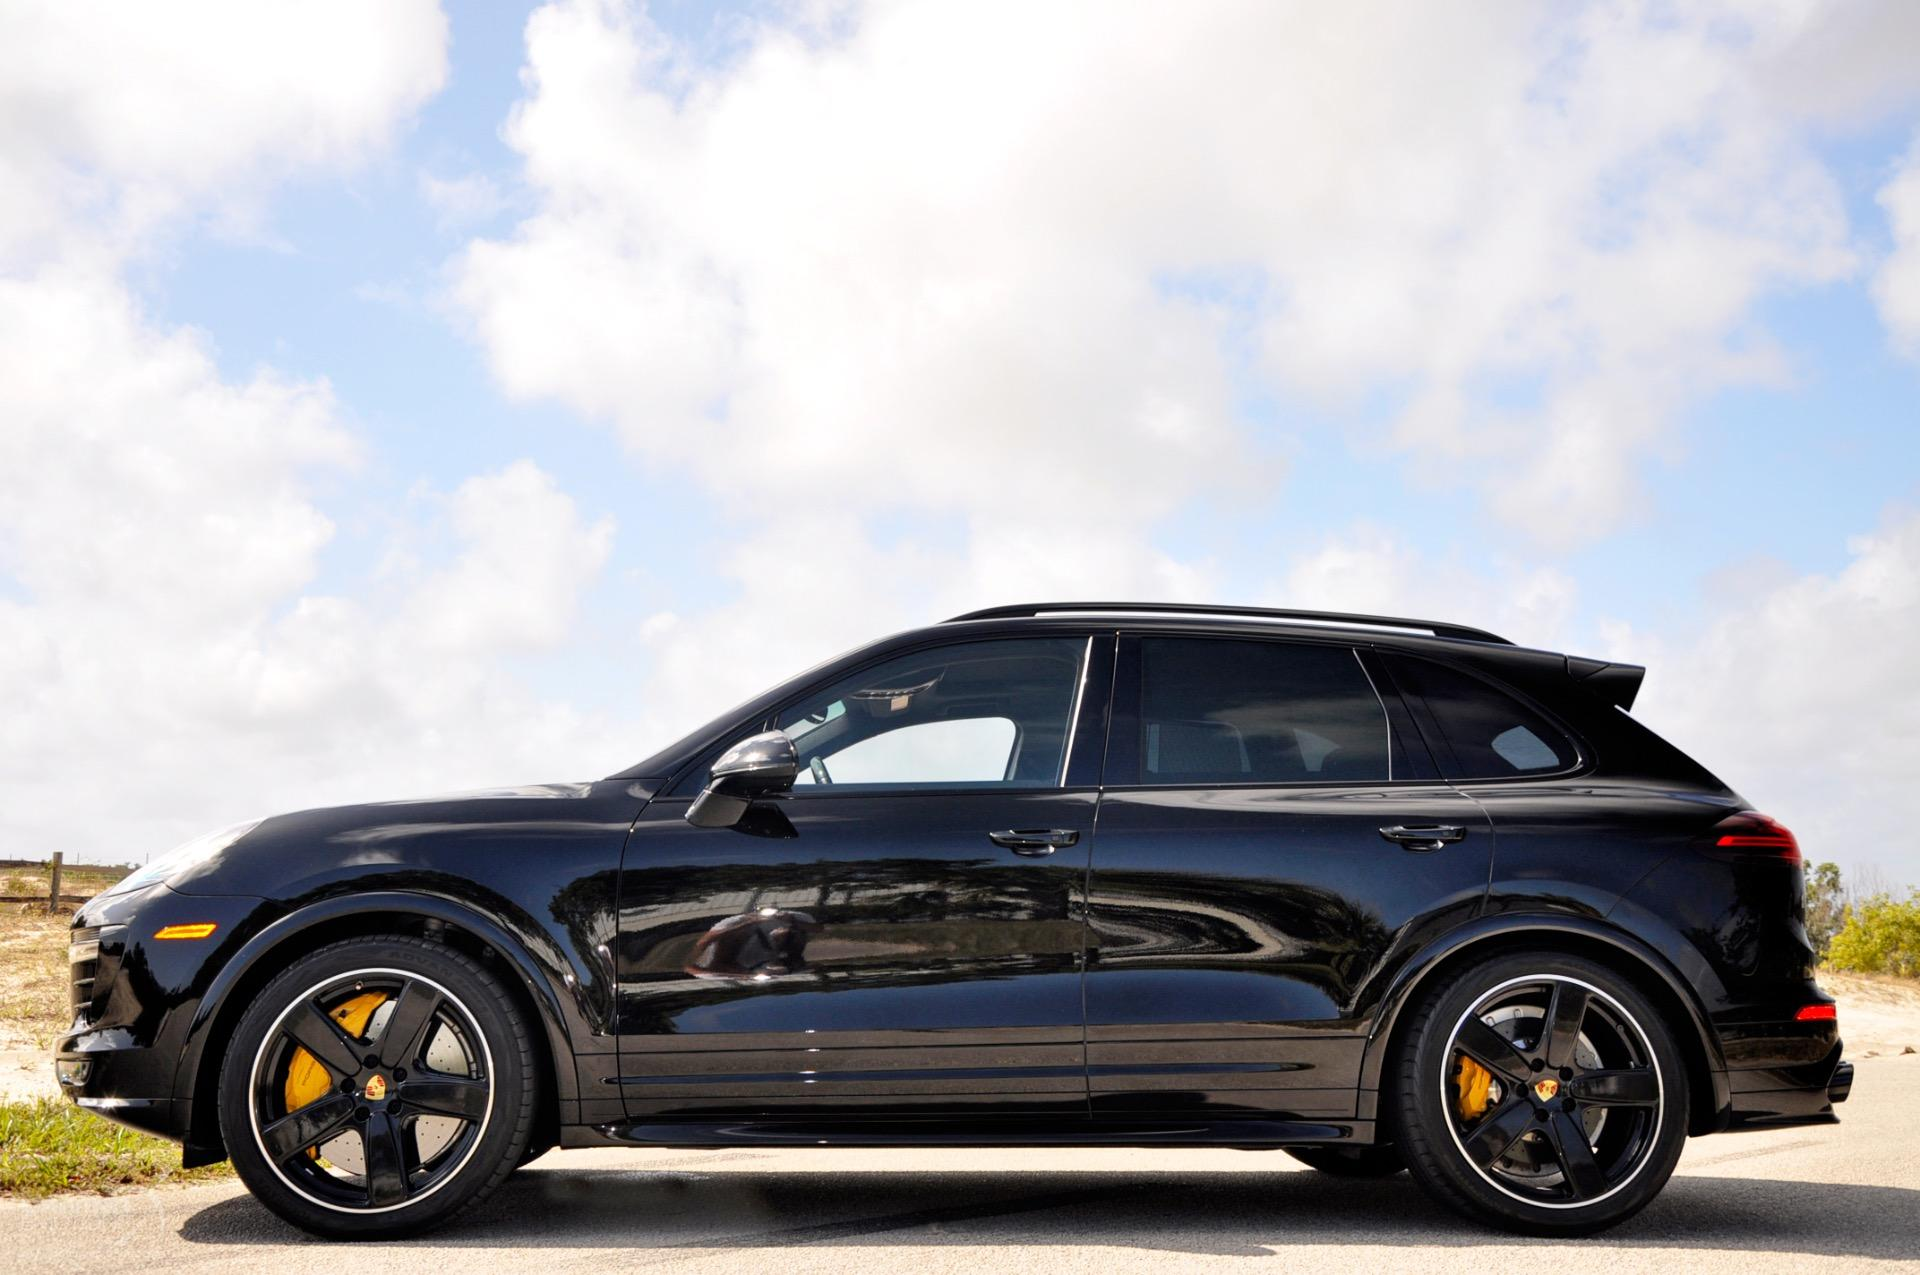 2016 porsche cayenne turbo s turbo s stock 5999 for sale near lake park fl fl porsche dealer. Black Bedroom Furniture Sets. Home Design Ideas